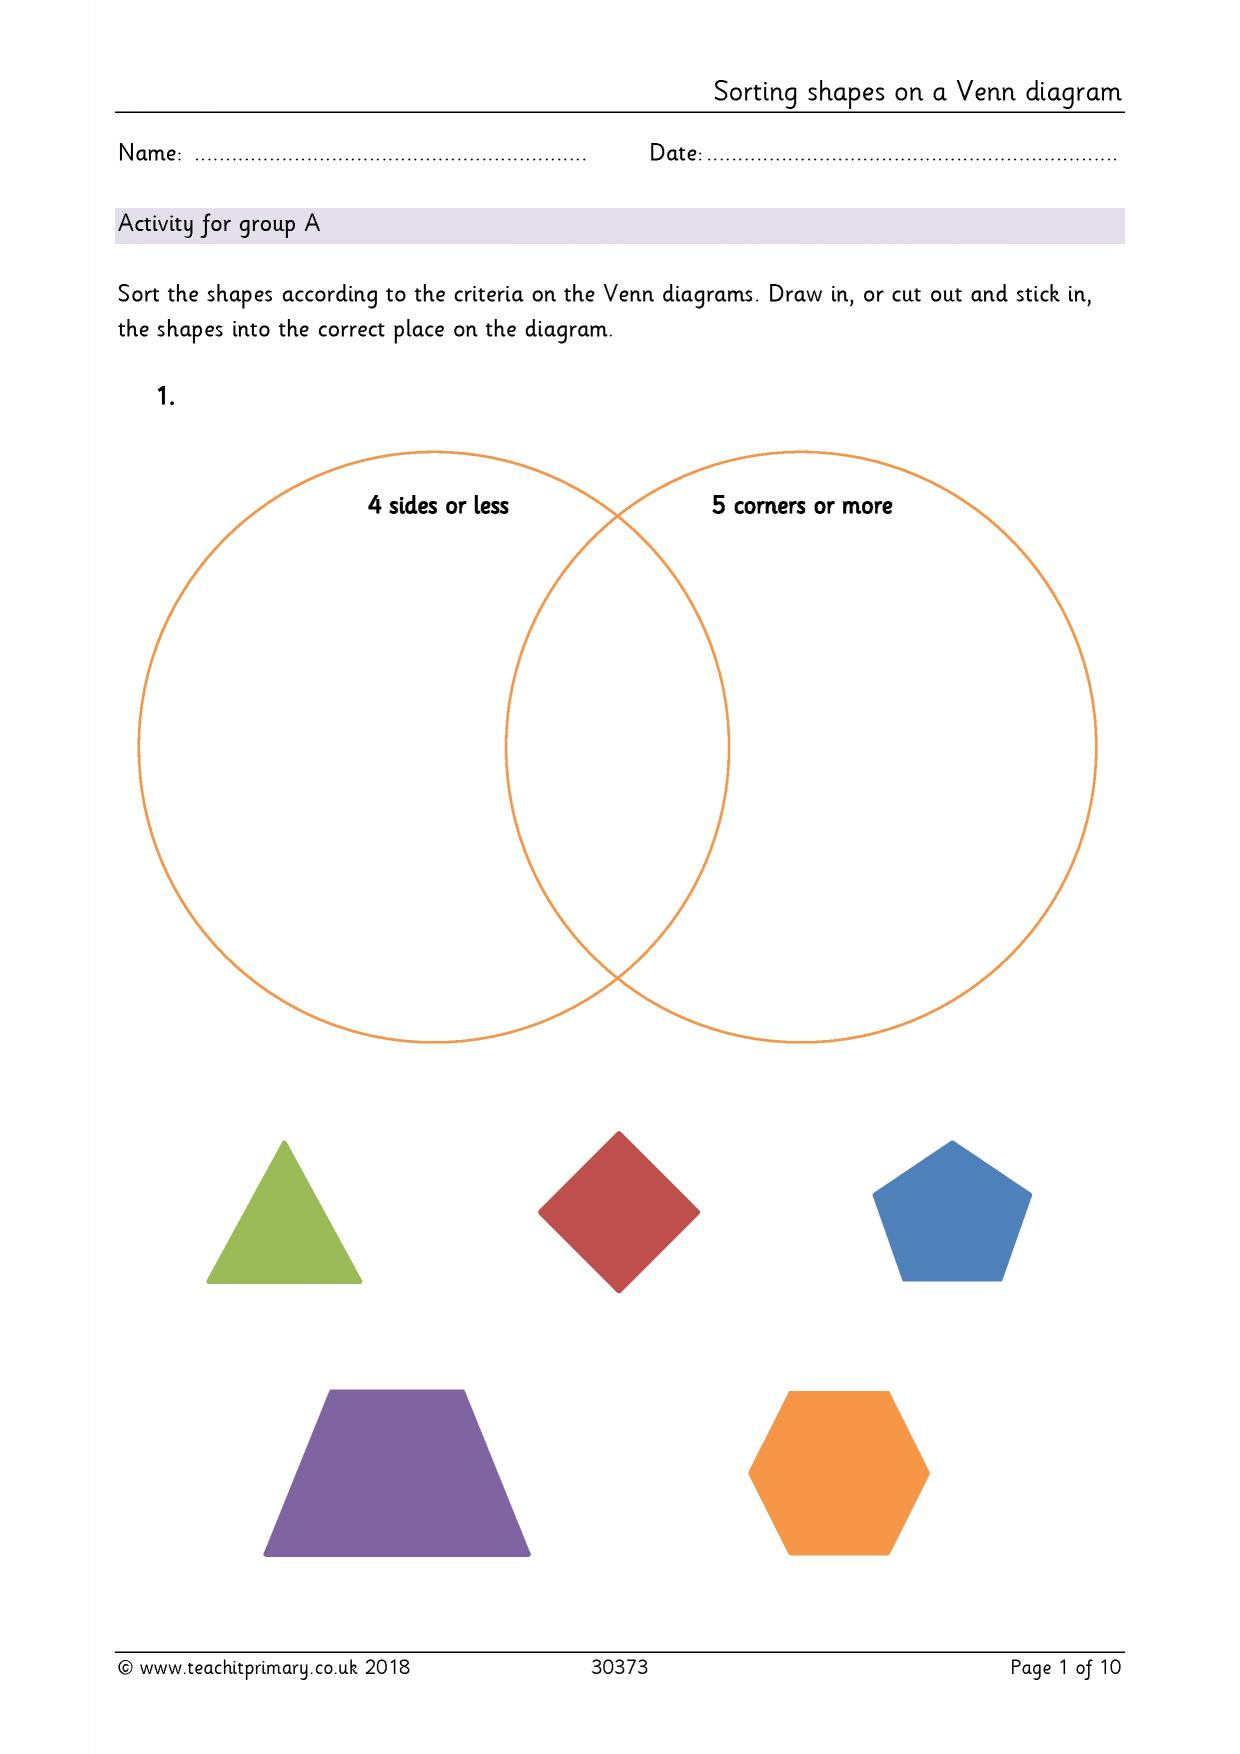 Sorting shapes venn diagram ks2 worksheet ukranochi sorting shapes venn diagram ks2 worksheet venn diagram worksheets sorting shapes ccuart Gallery